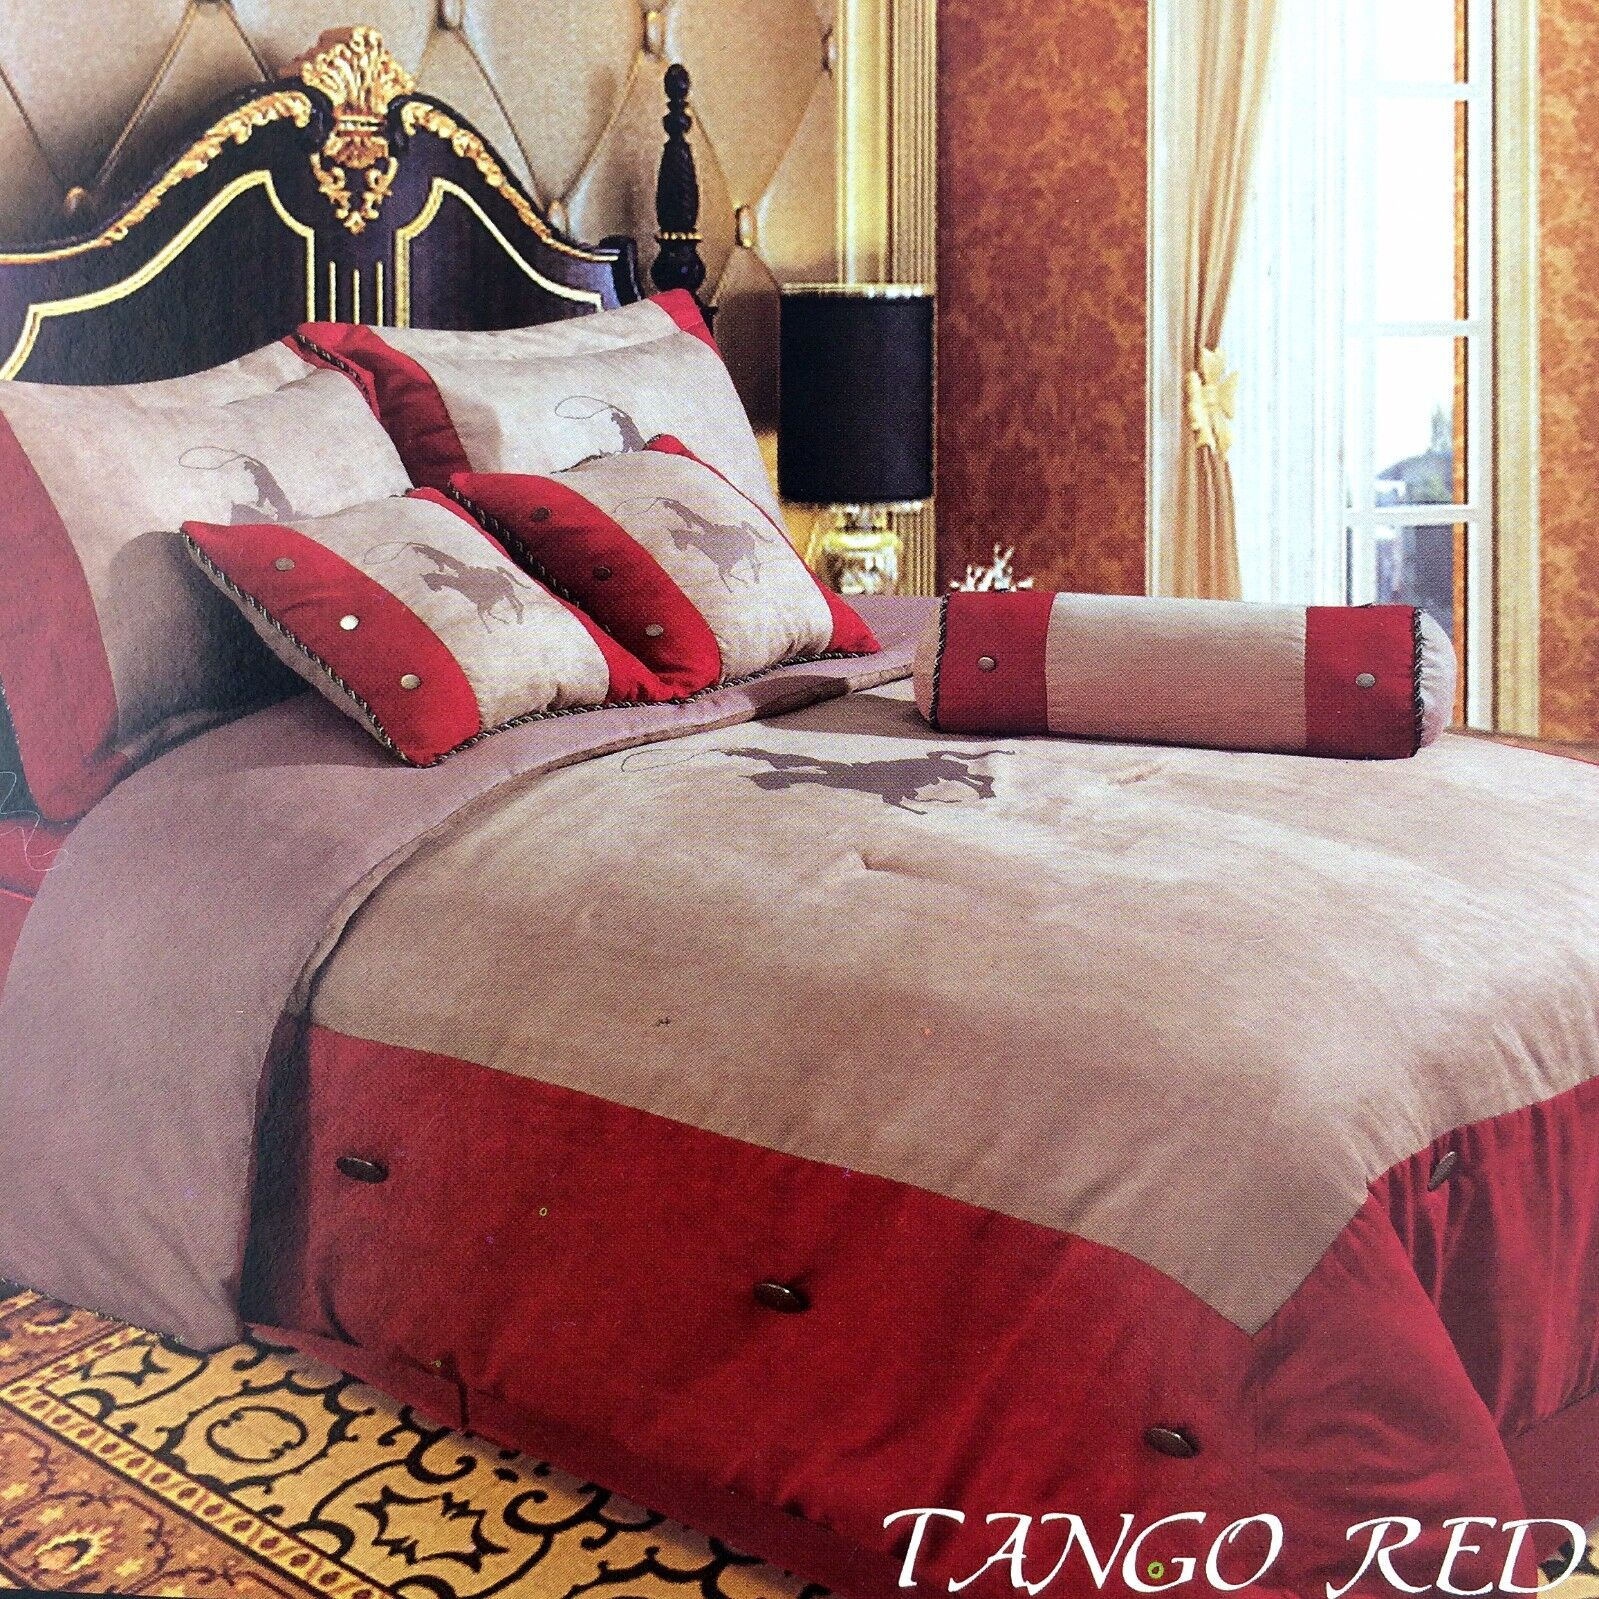 embroidery printed texas western horse luxury comforter. Black Bedroom Furniture Sets. Home Design Ideas